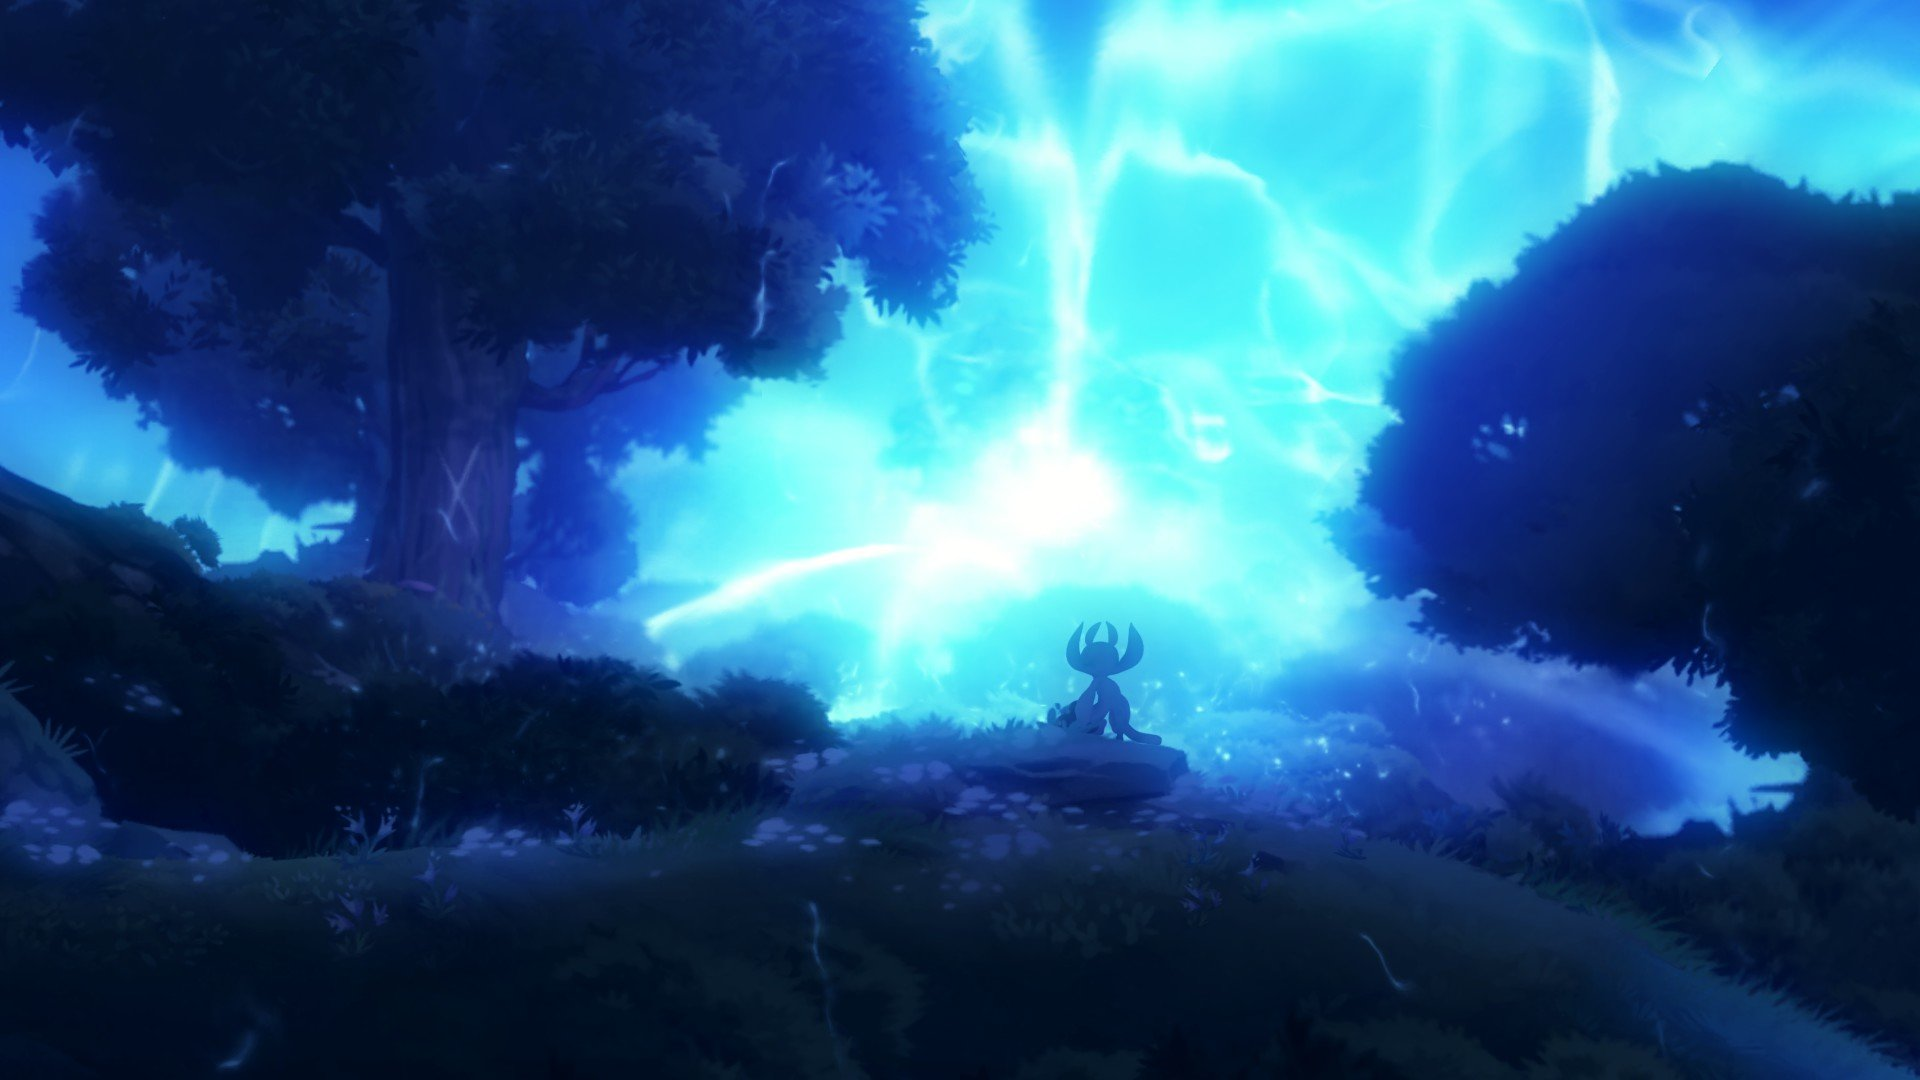 HQ Ori And The Blind Forest Wallpaper